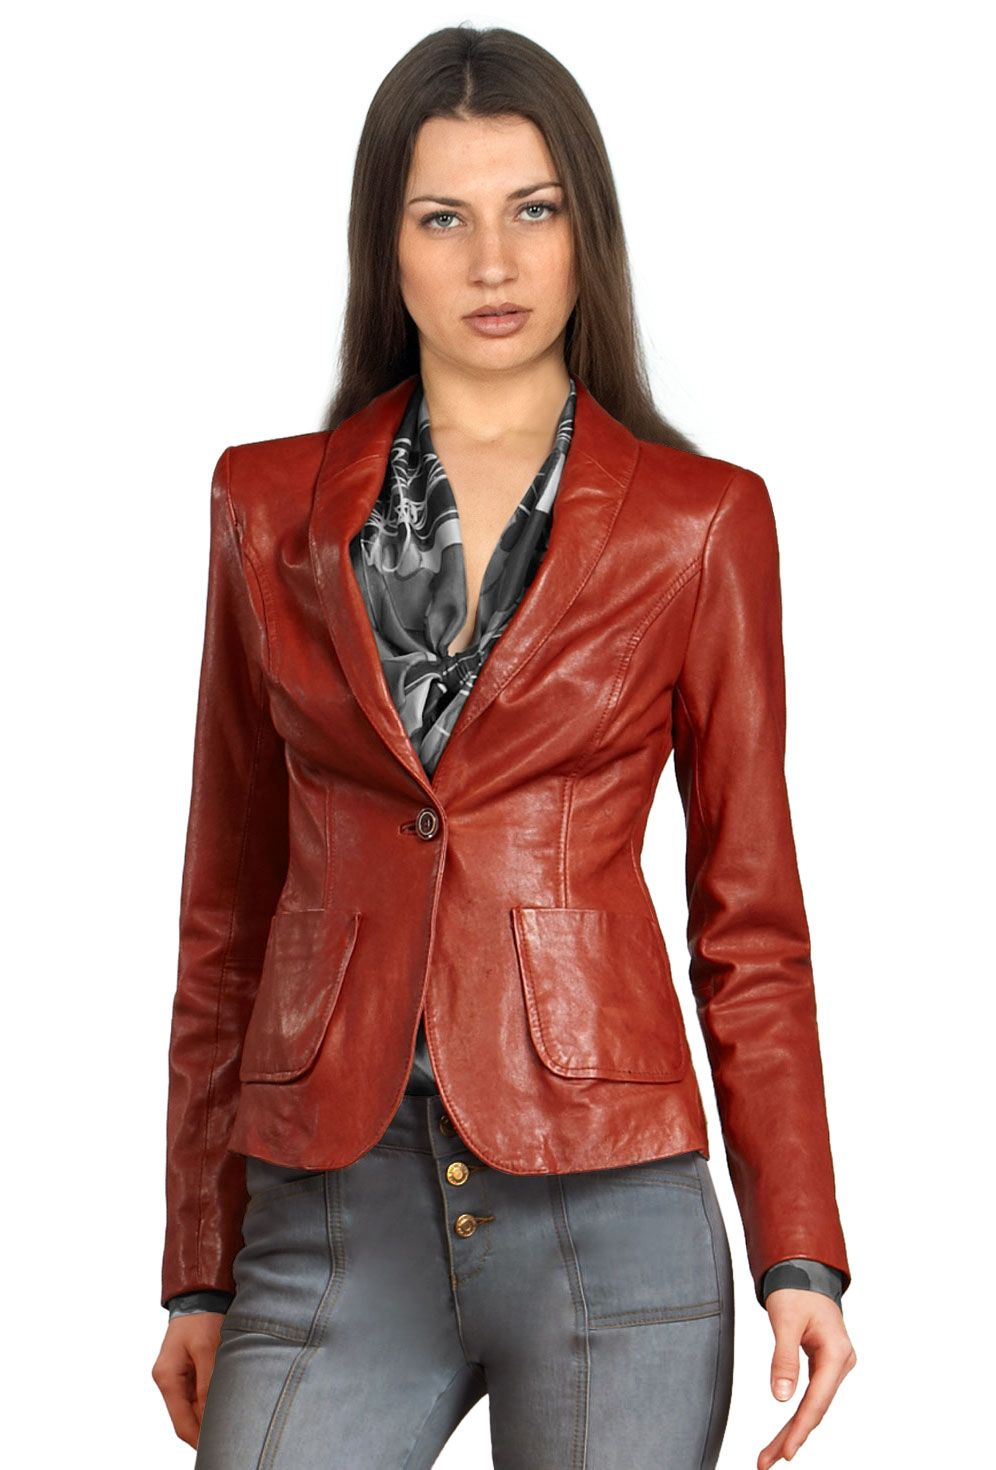 Retro Pattern Single Buttoned Official Leather Blazer | Leather Blazers | Pinterest | Leather ...